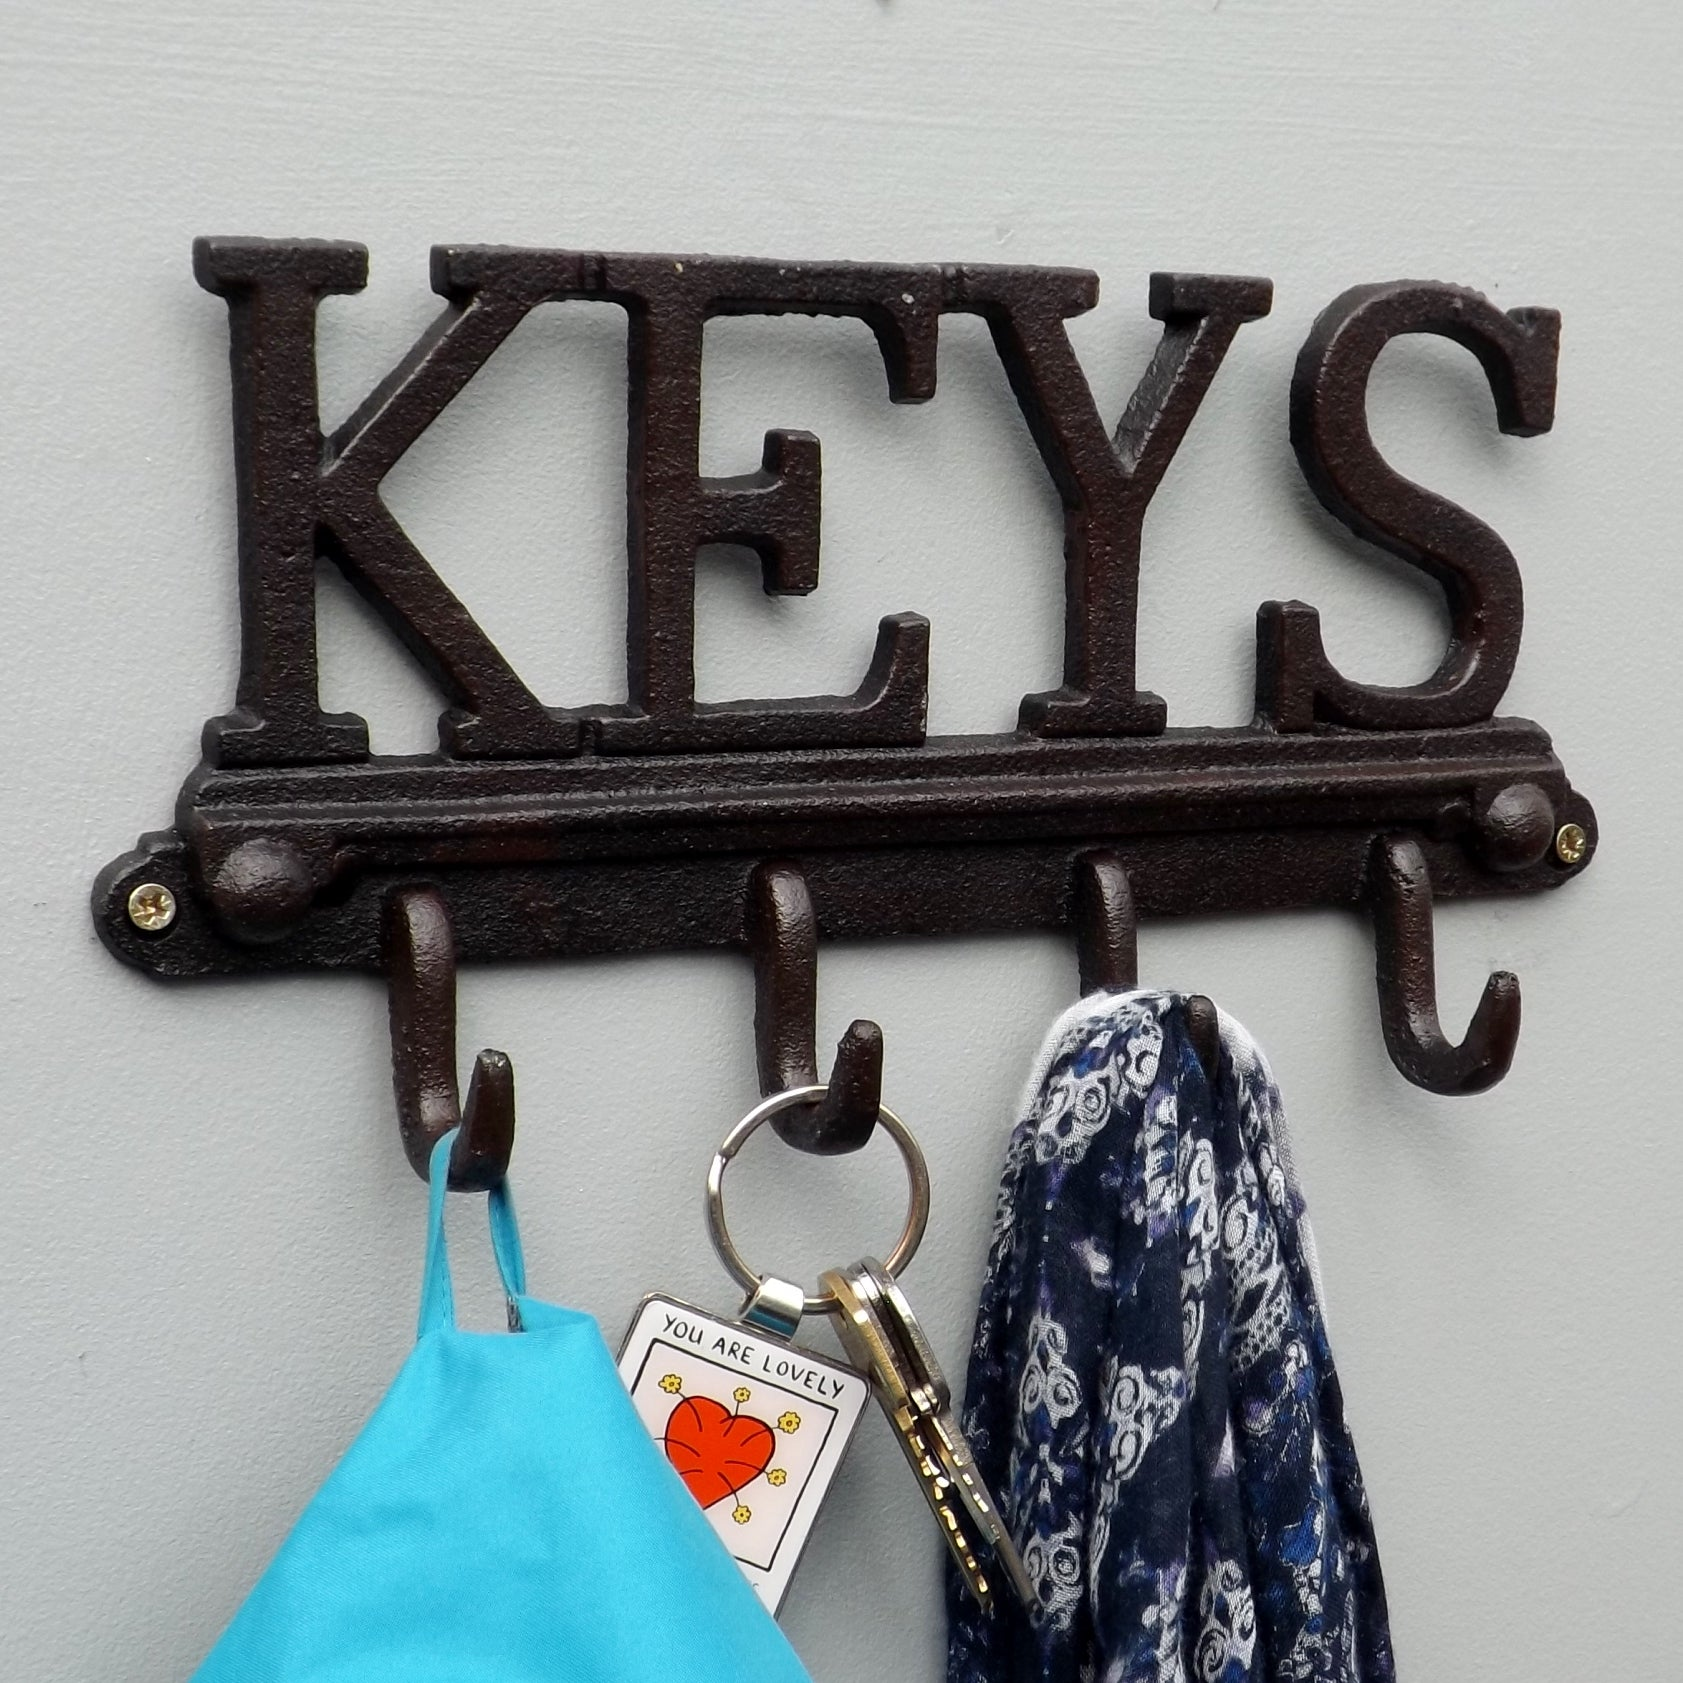 The KEYS Cast Iron Rack